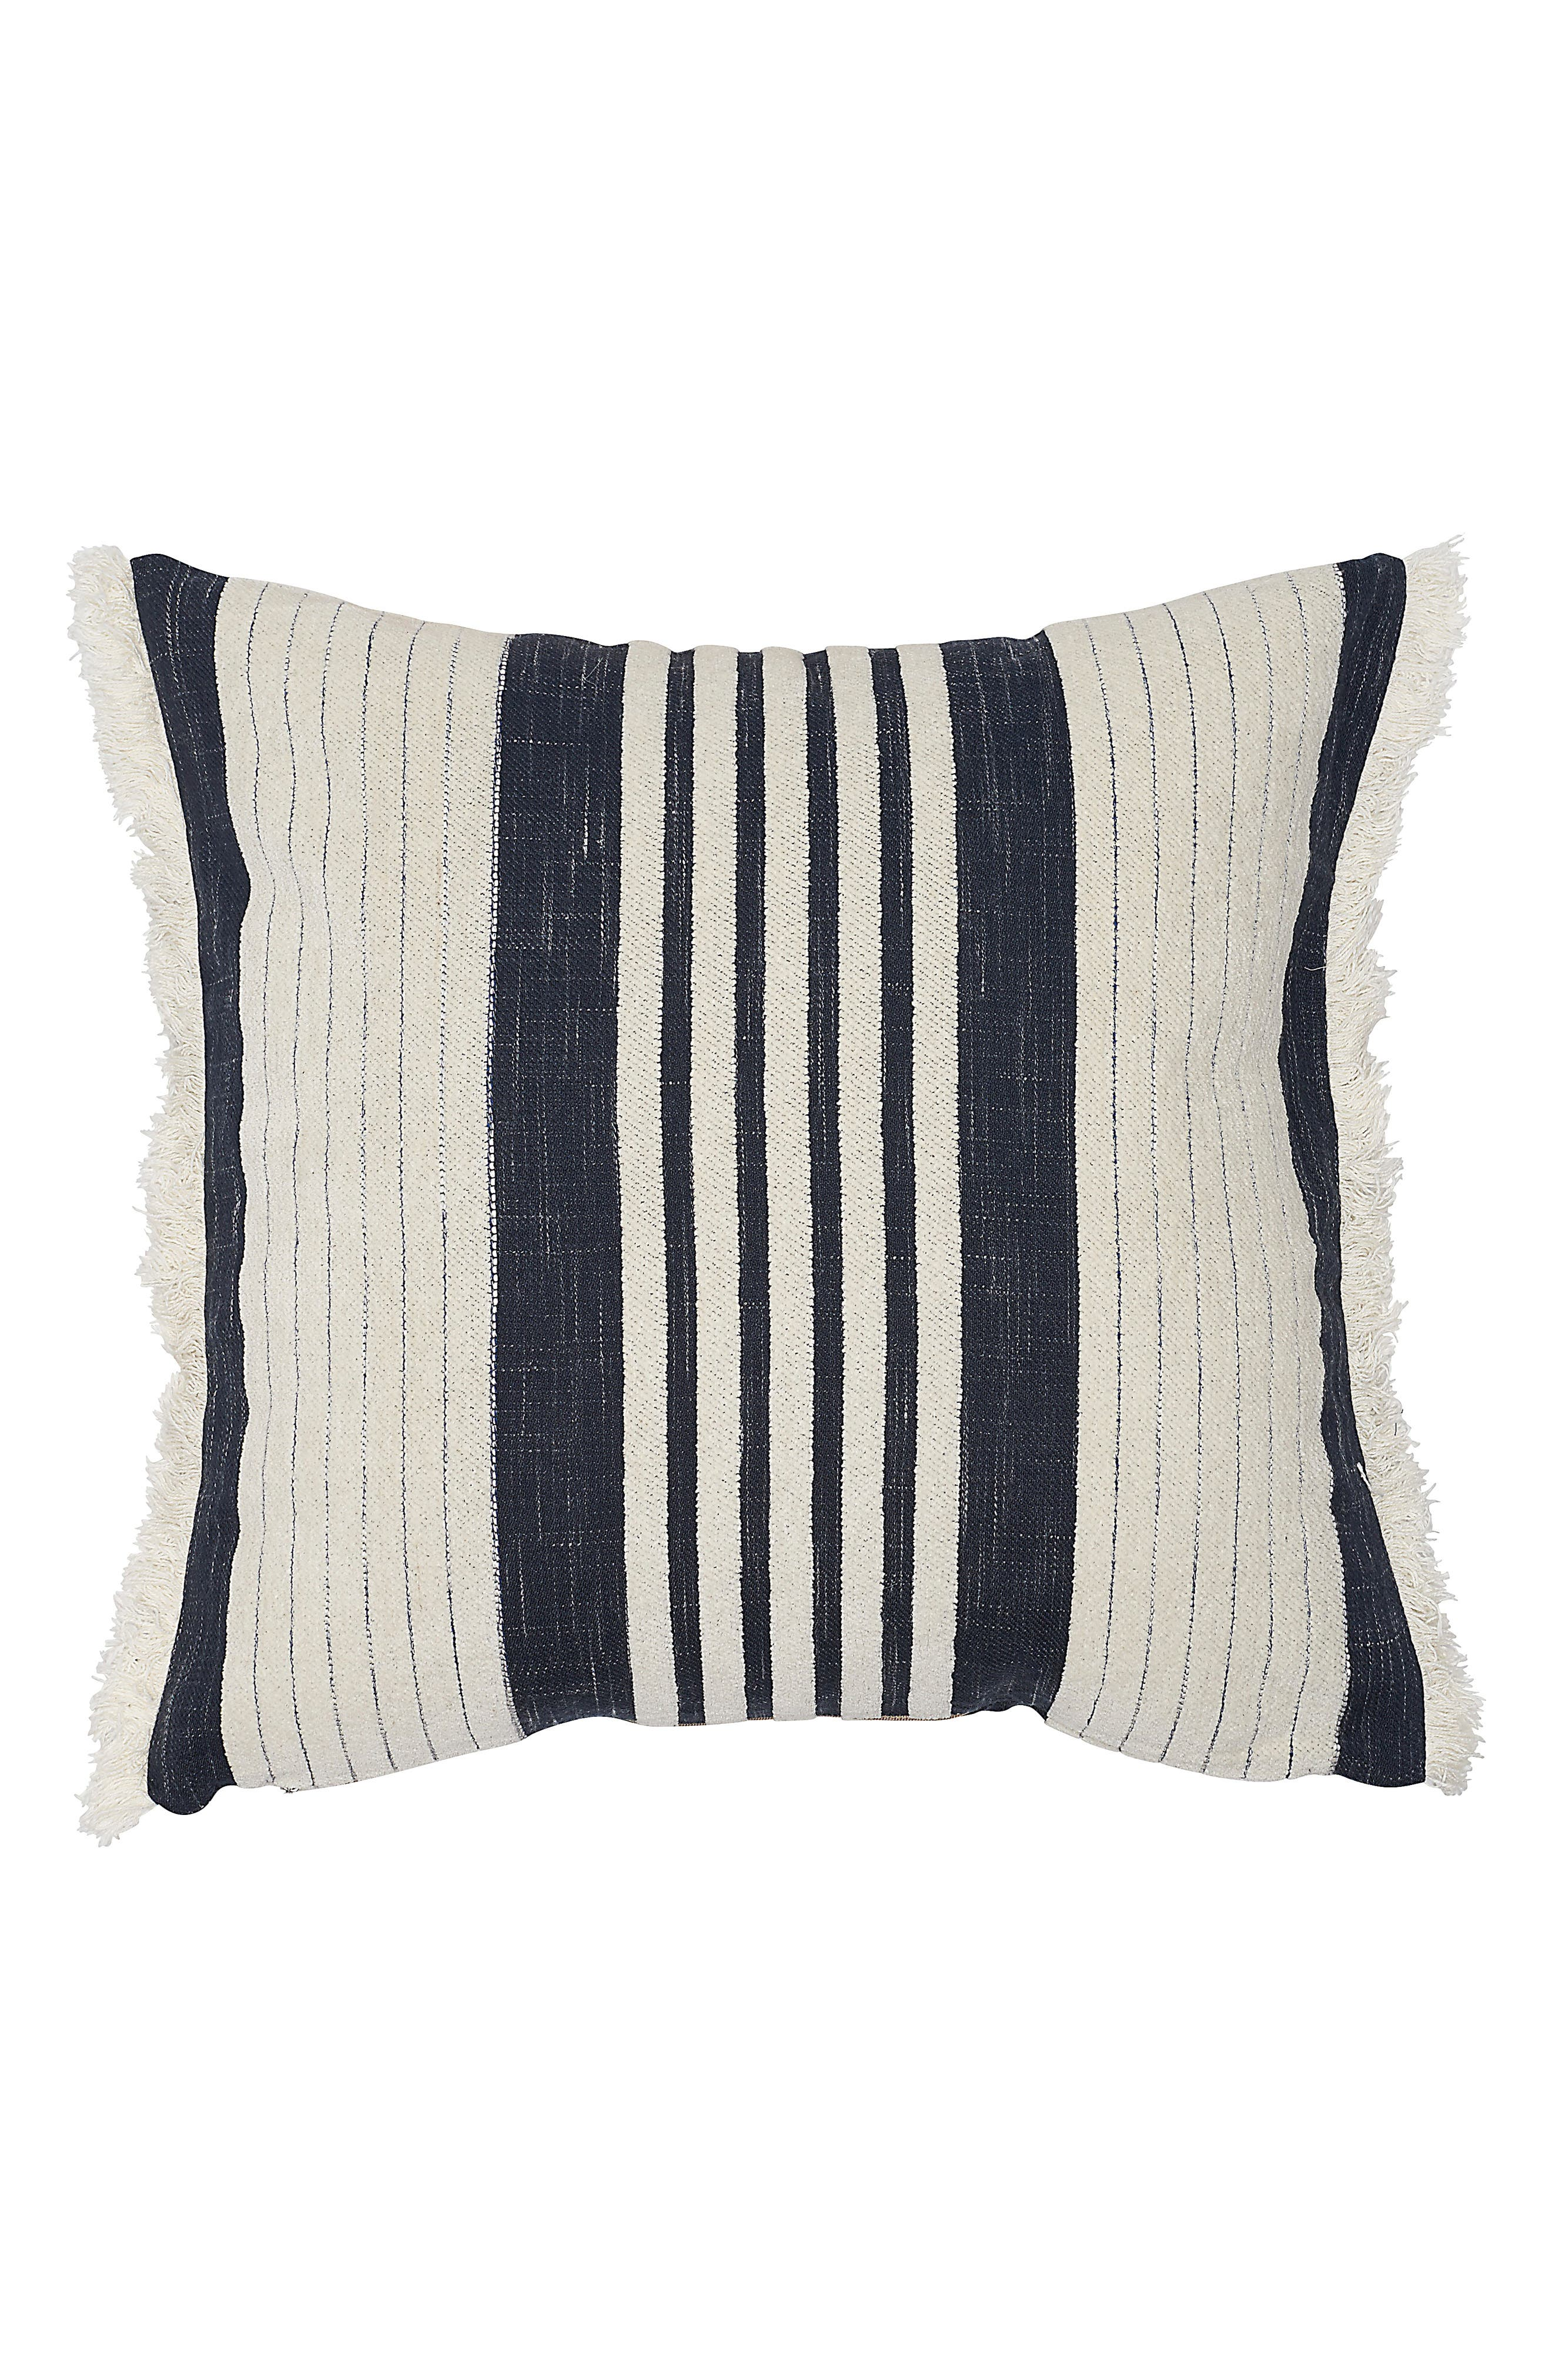 EADIE LIFESTYLE Chilled Chenille Accent Pillow, Main, color, 900